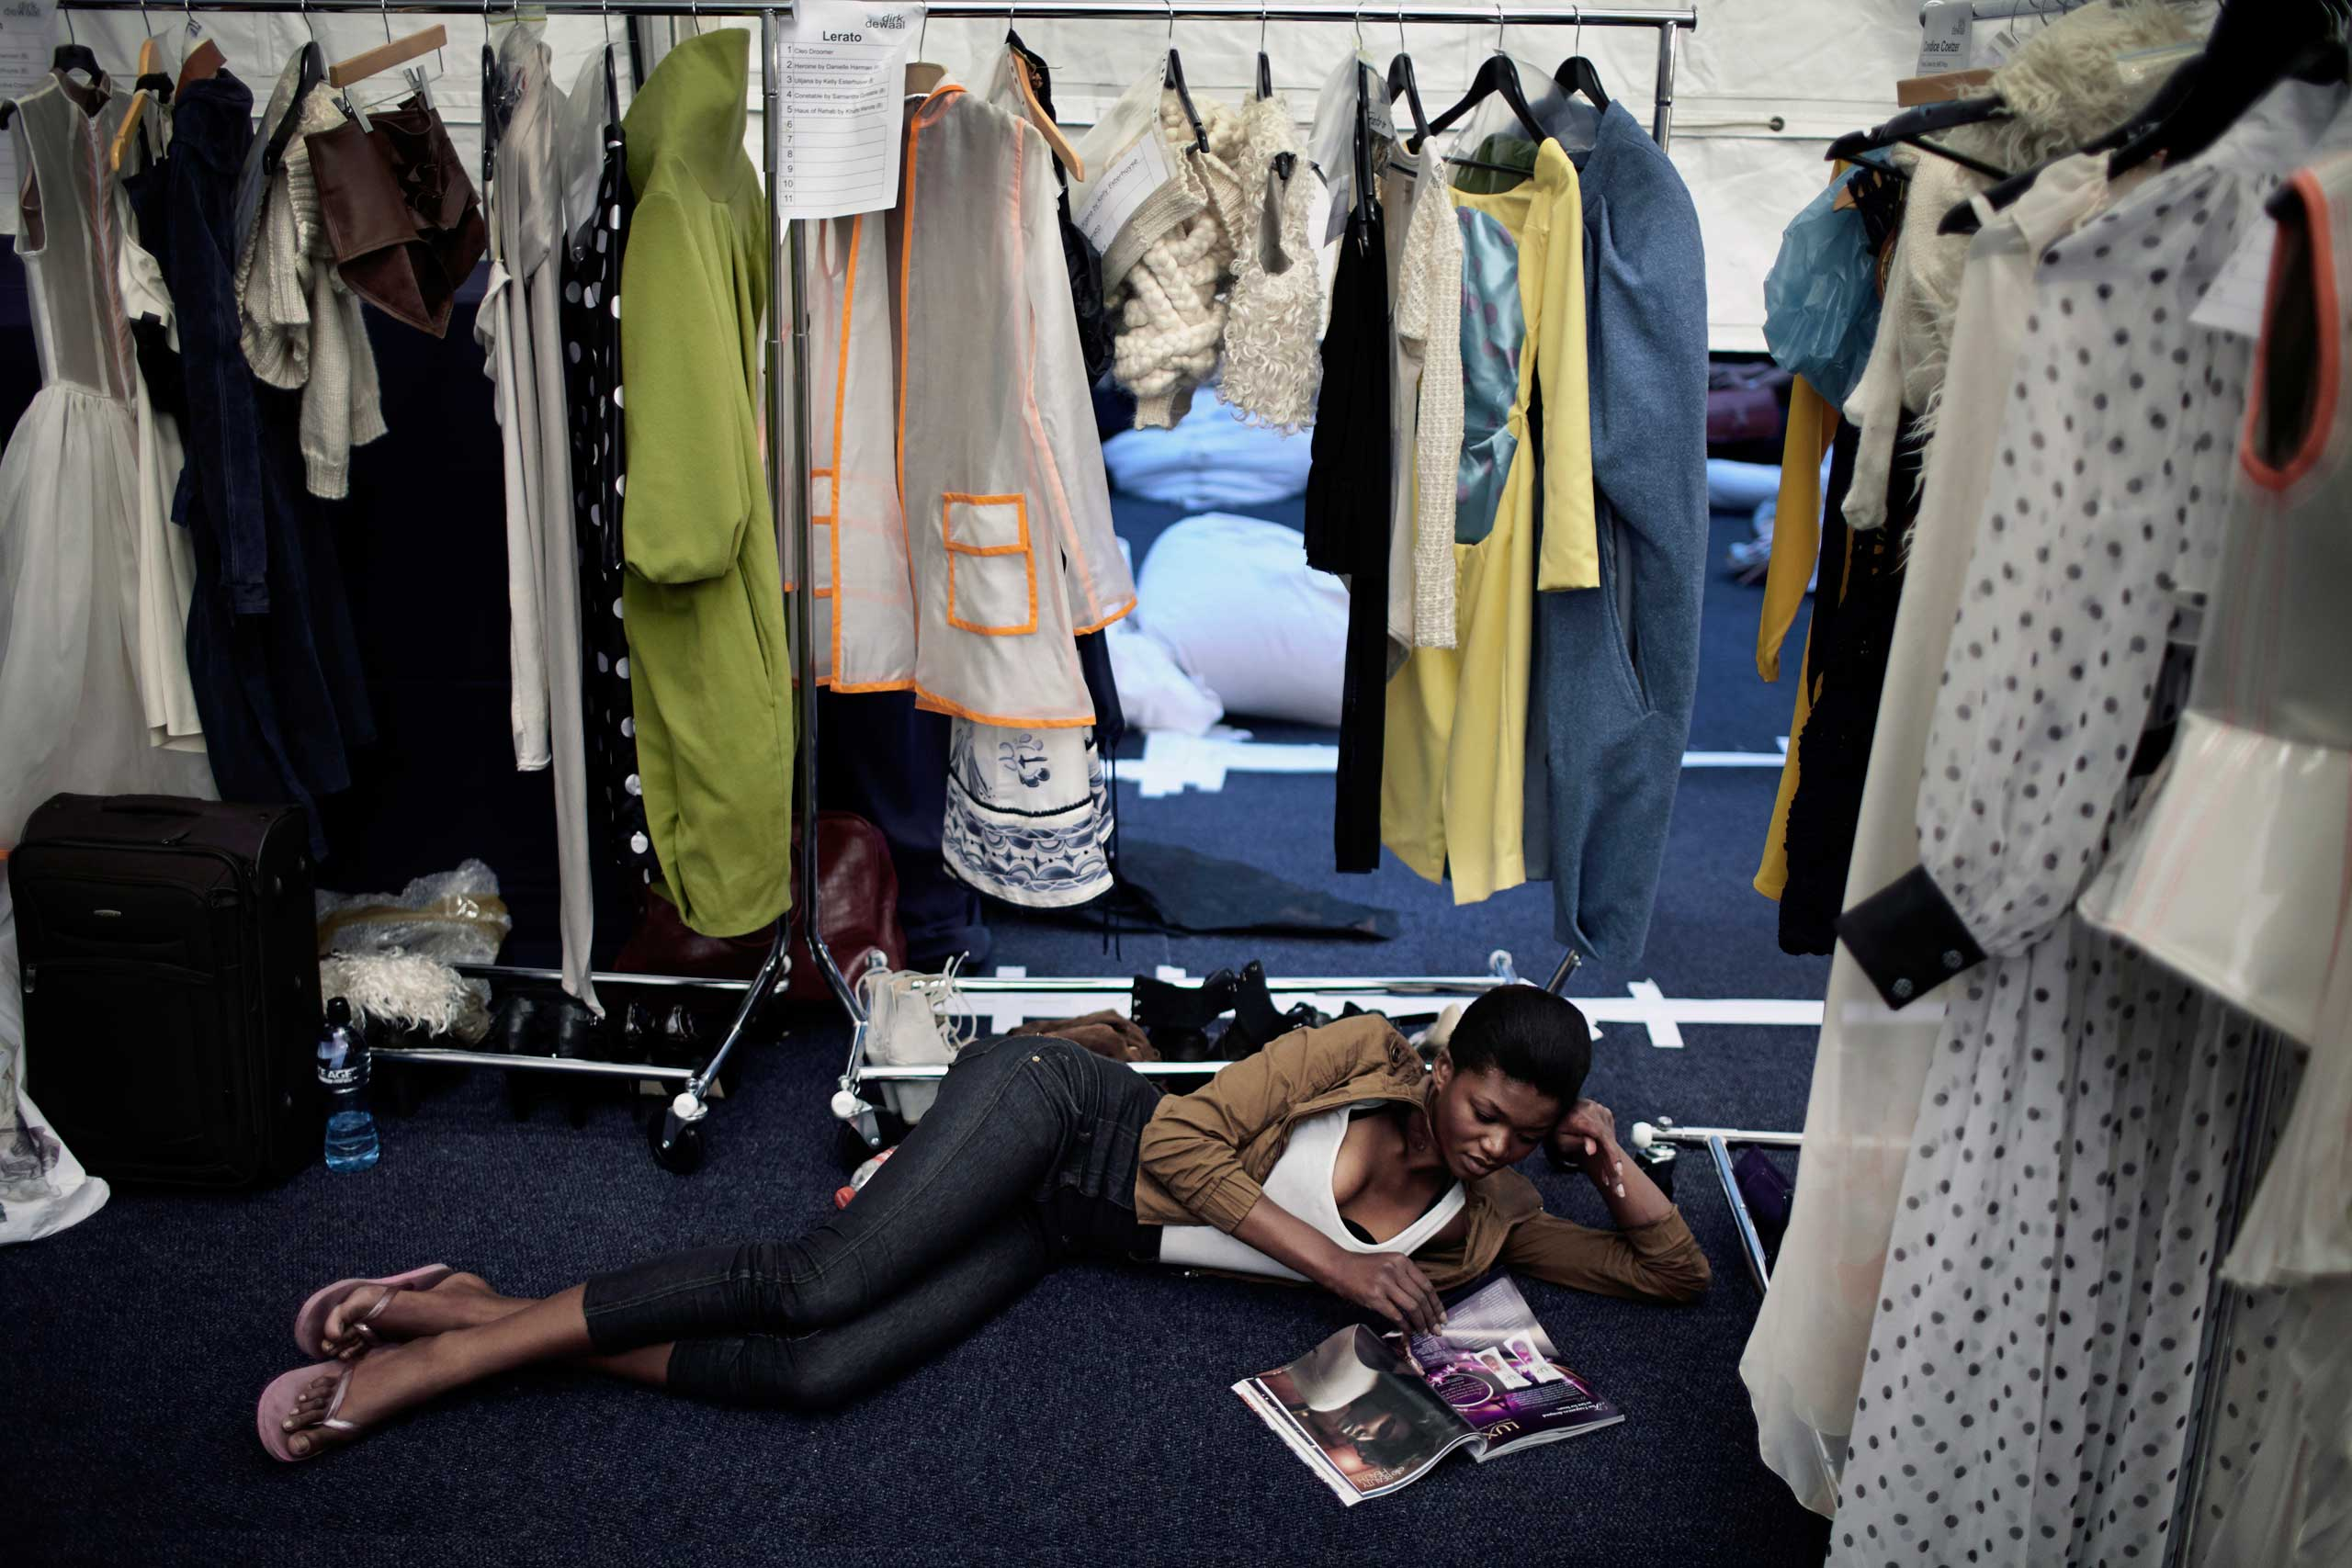 A models reads a fashion magazine backstage before a fashion show at South Africa Fashion Week on Sept. 22, 2011 held in Johannesburg, South Africa.